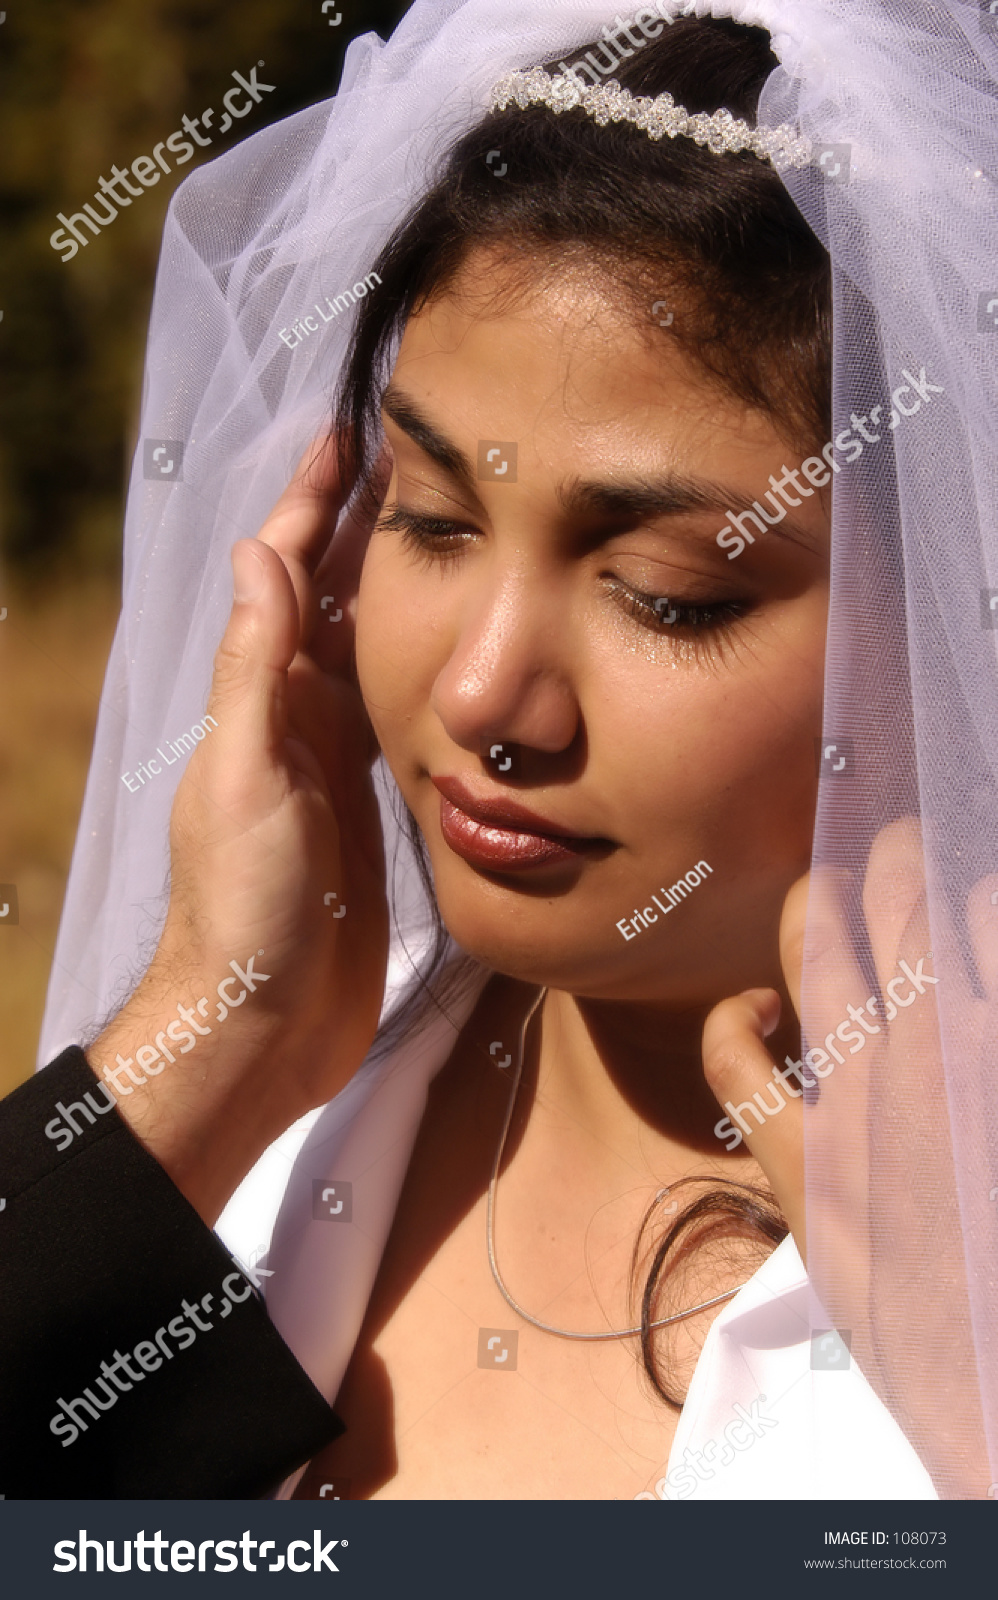 mailorder brides mexico